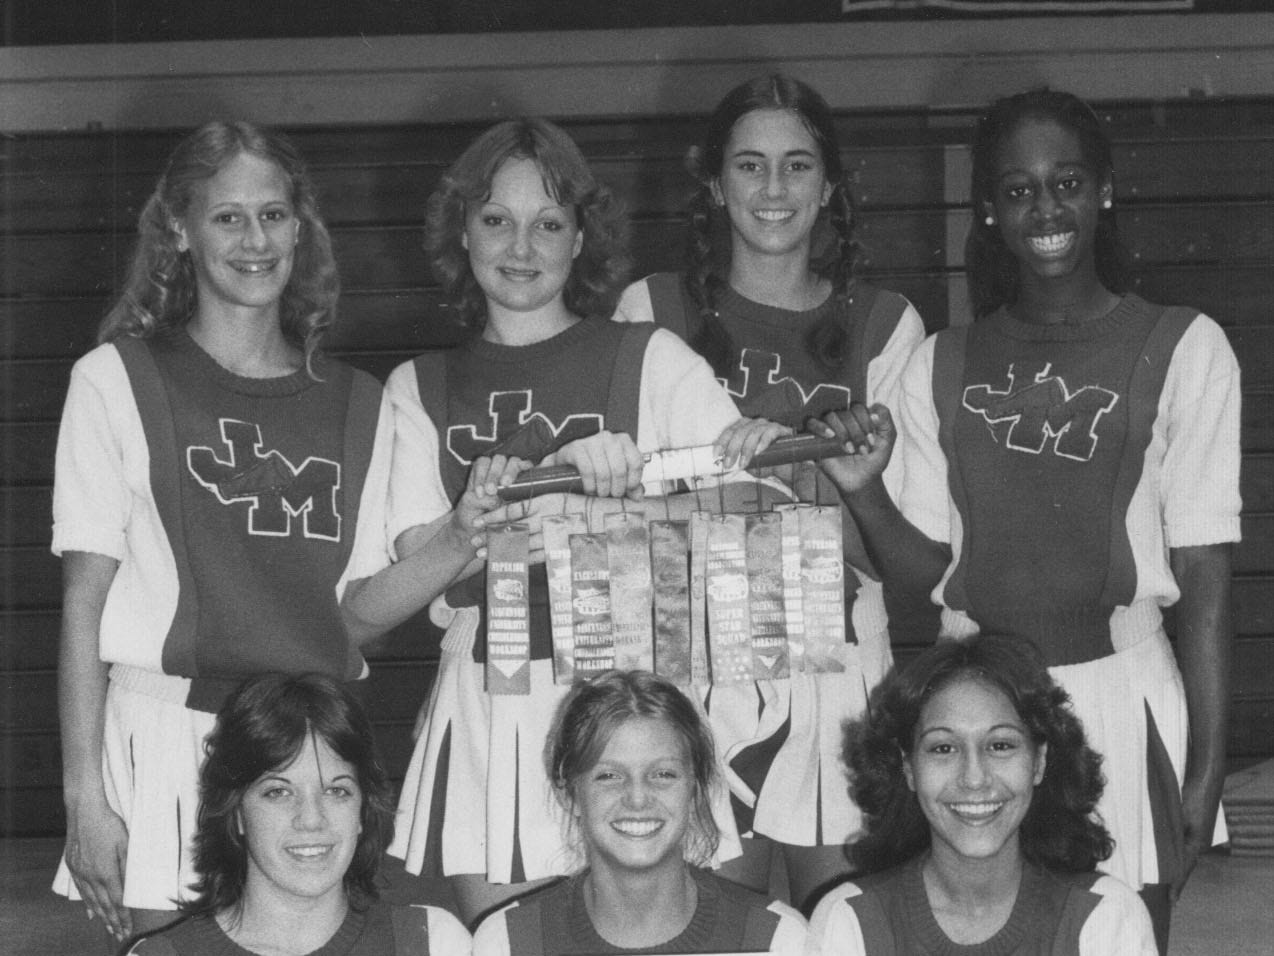 The John Marshall High School varsity cheerleading squad in 1980. 